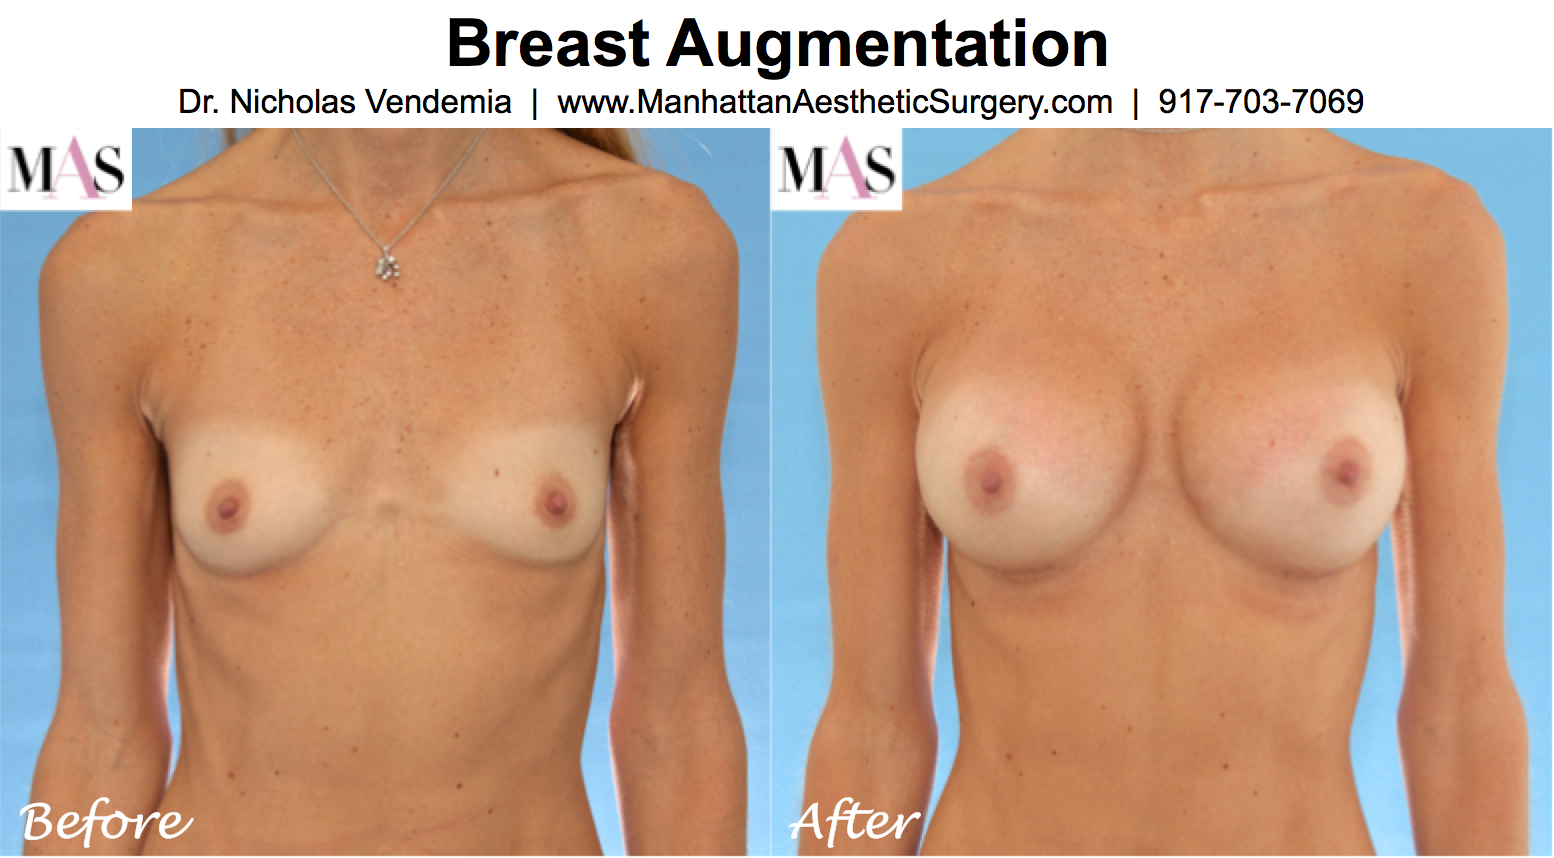 nyc breast enhancement jpg 422x640